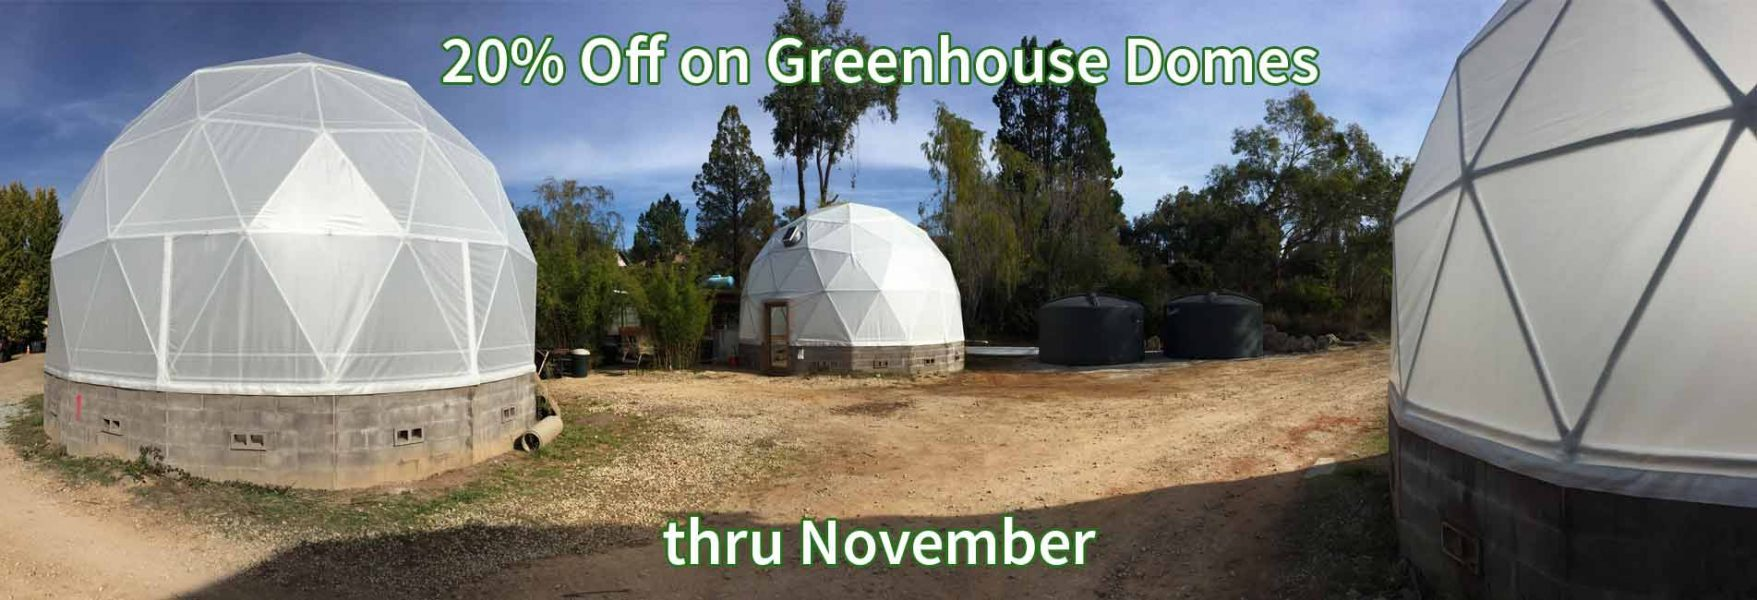 Greenhouse domes on sale